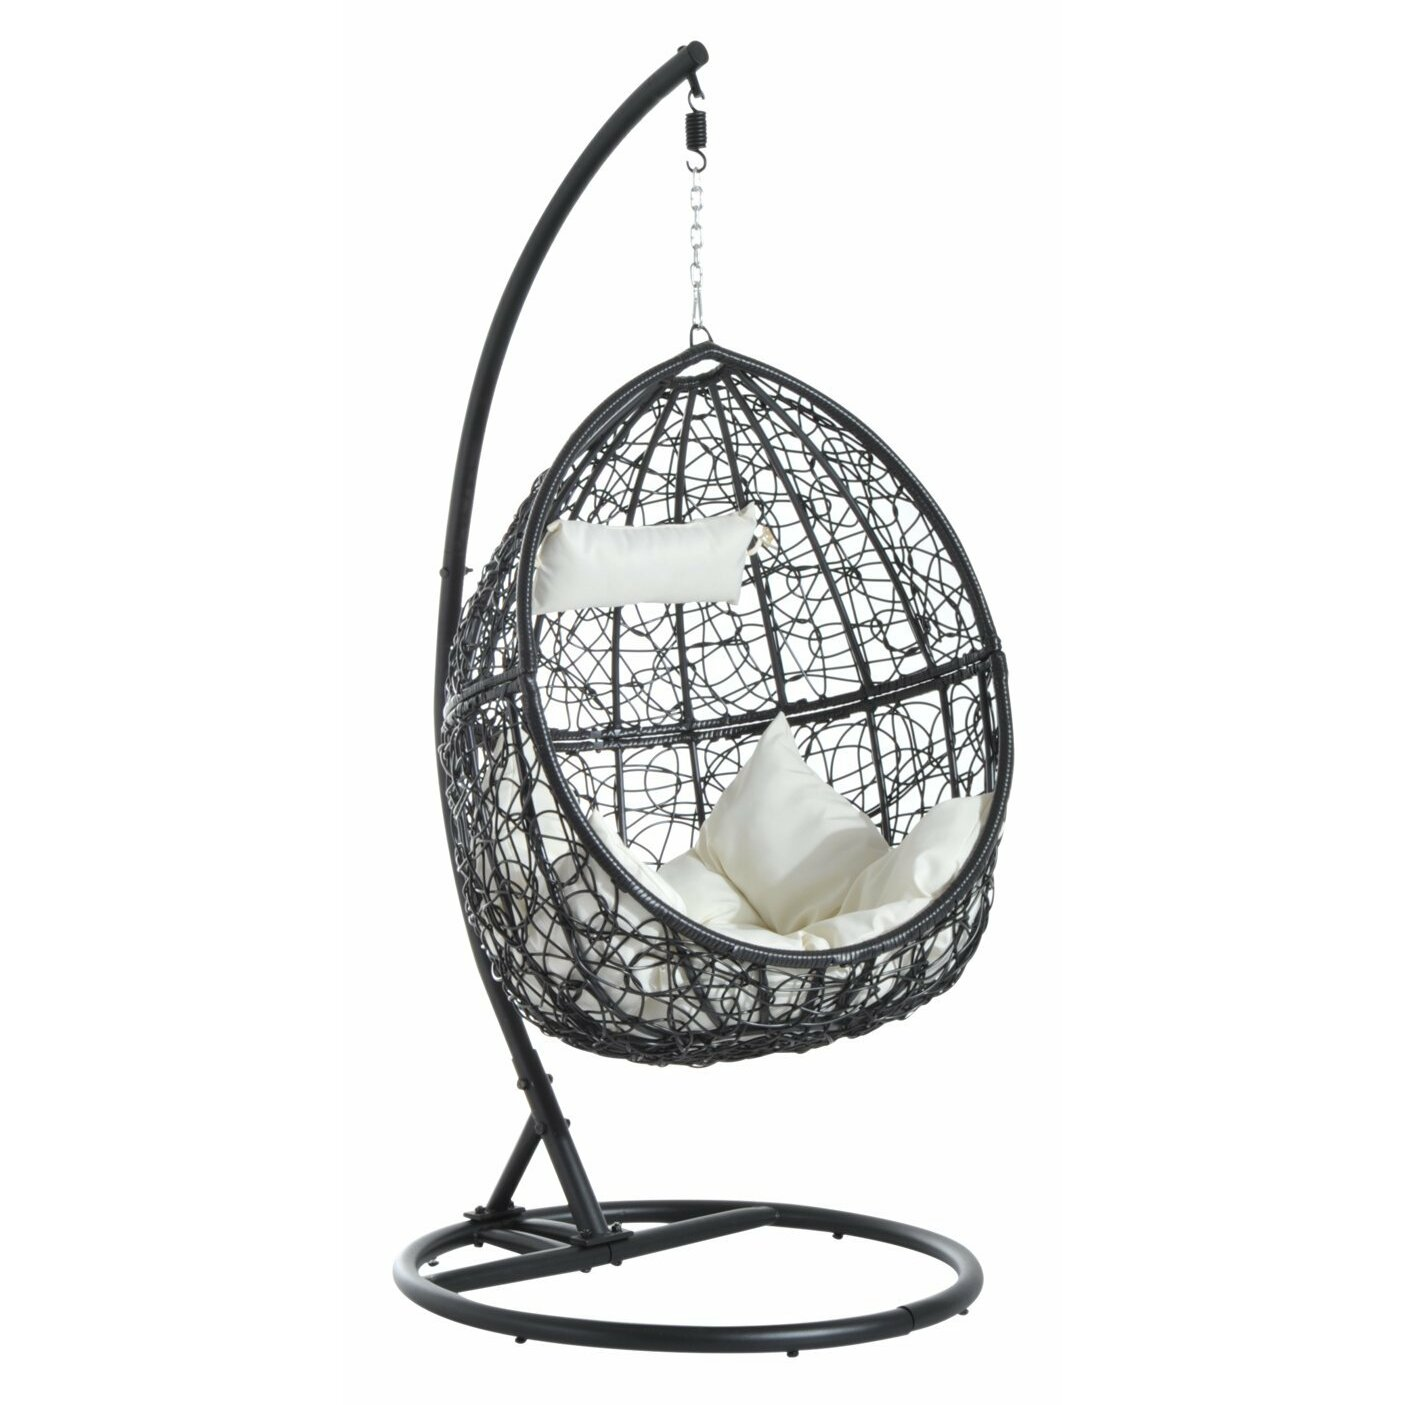 Bel Étage Egg Hanging Chair with Stand & Reviews | Wayfair ...